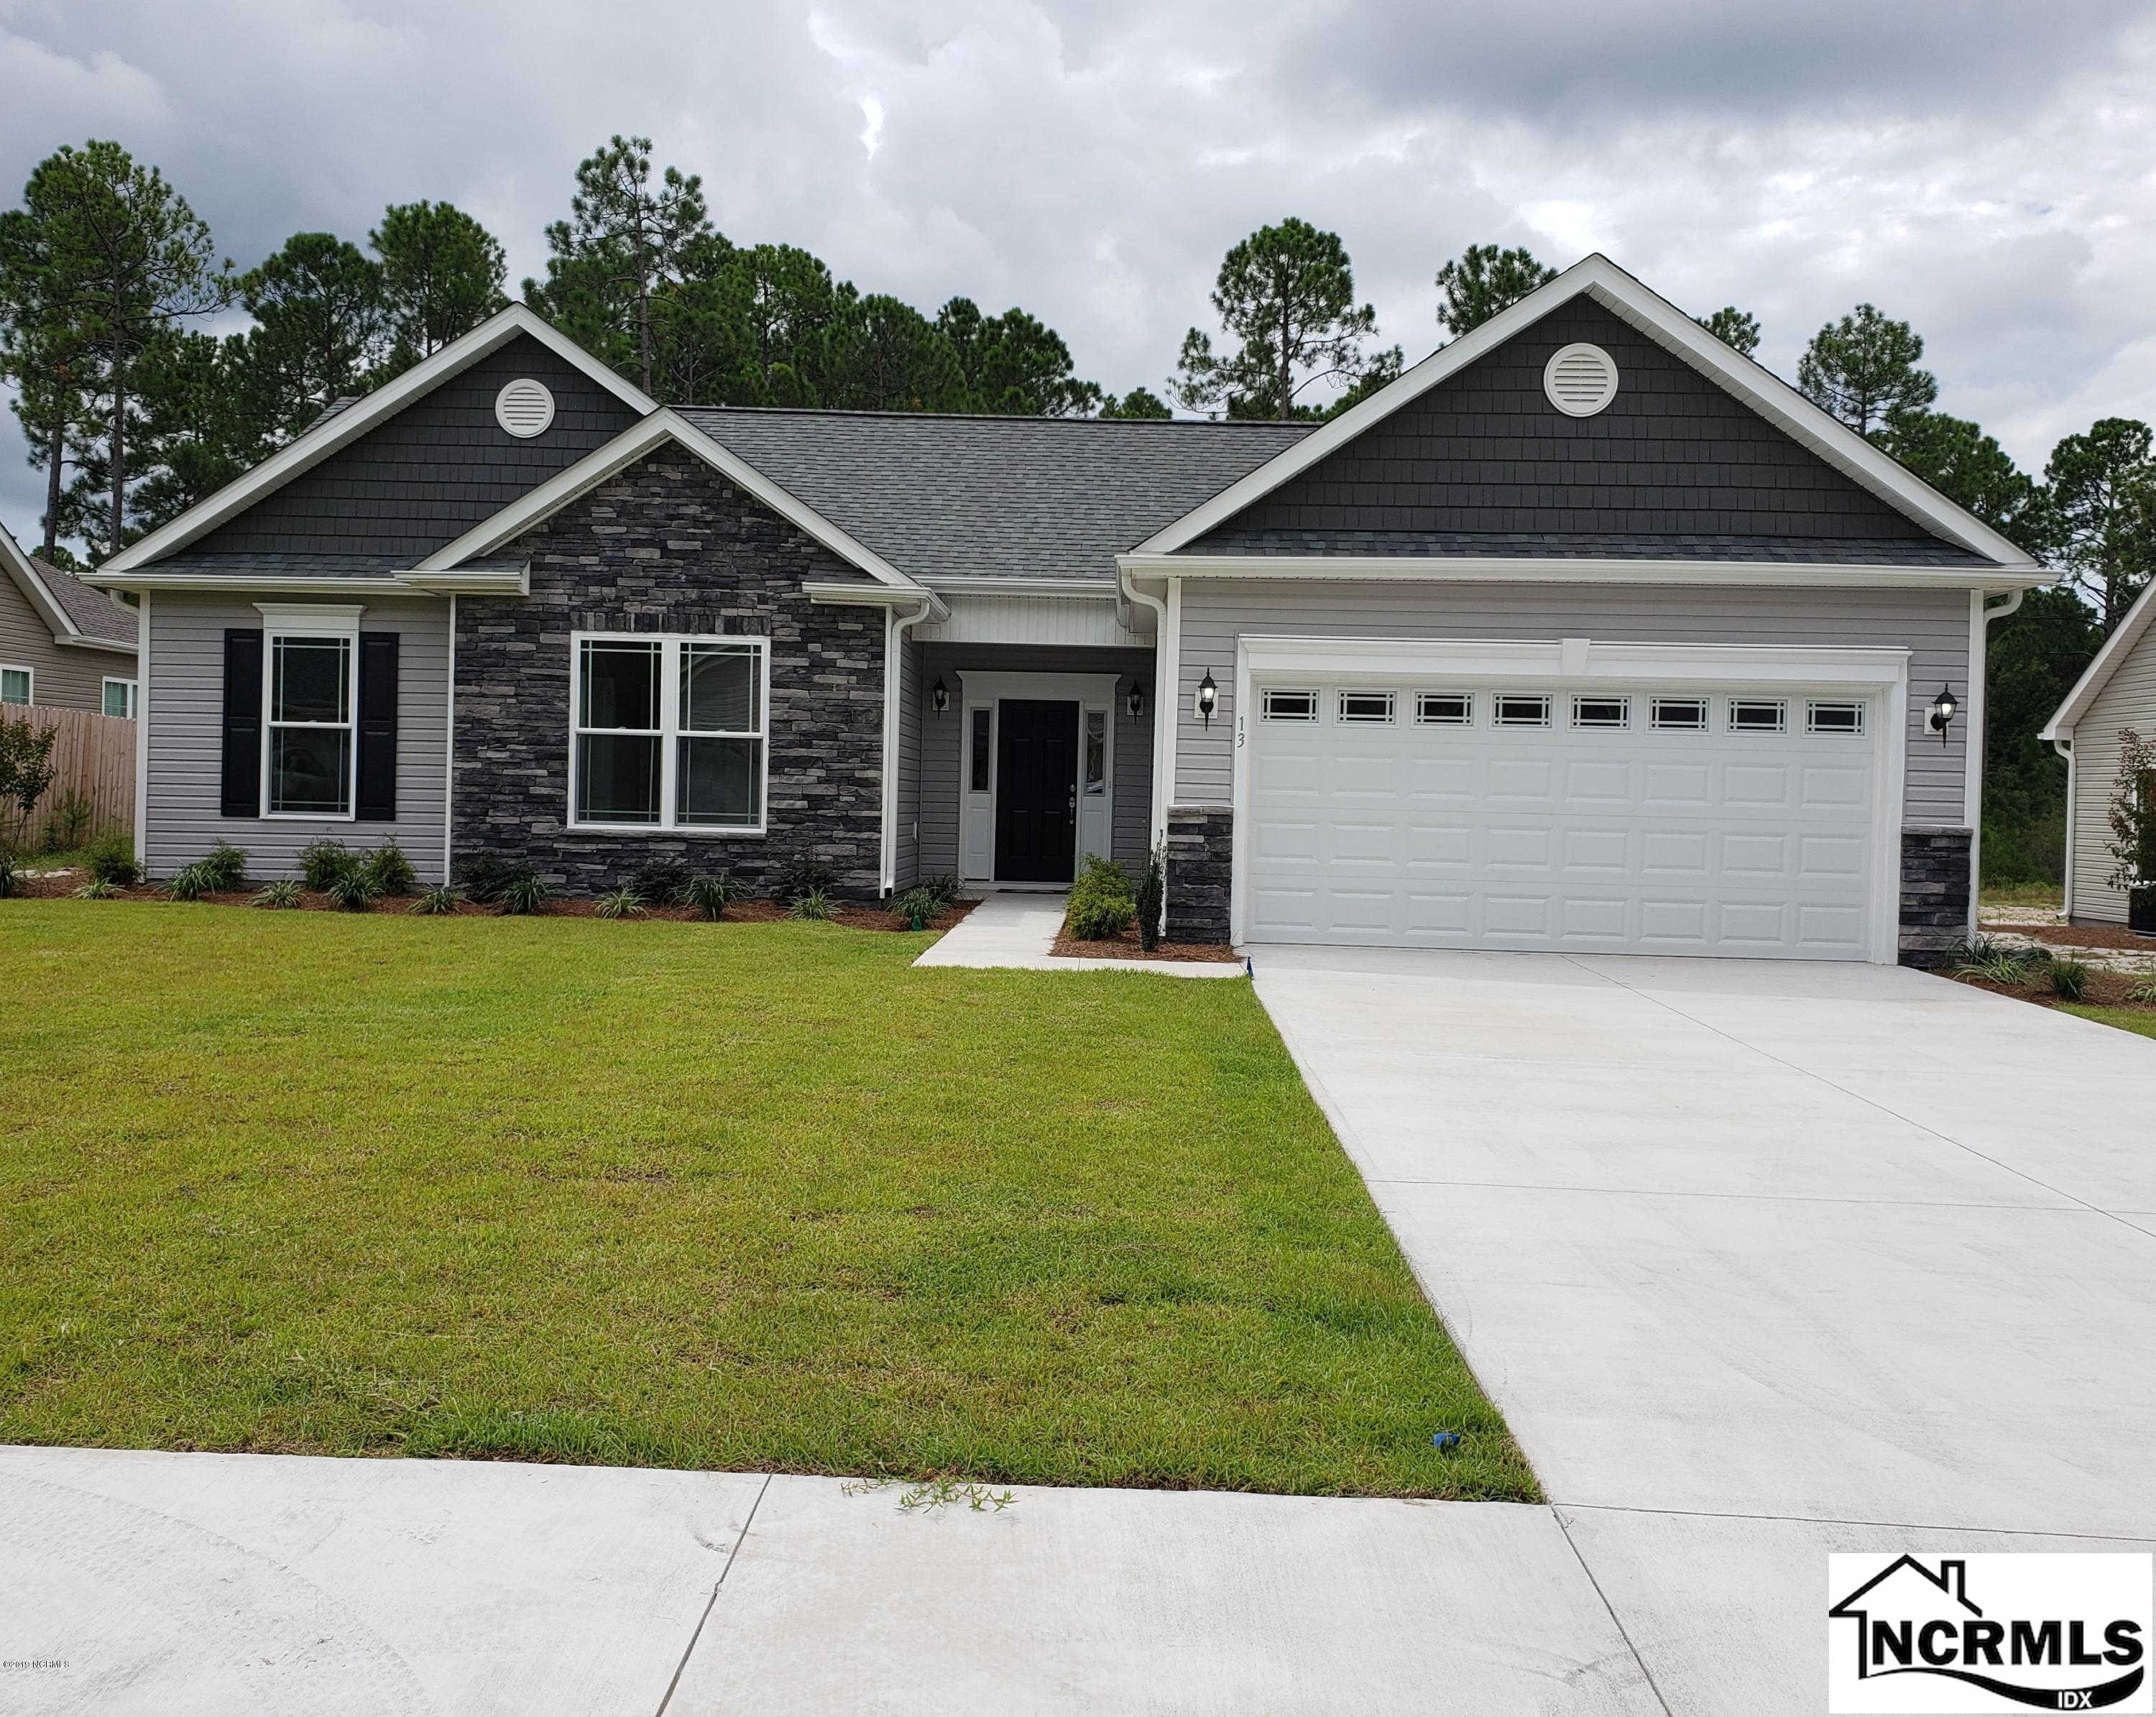 13 Edinburgh Drive NW, Shallotte, NC 28470 now has a new price of $229,375!